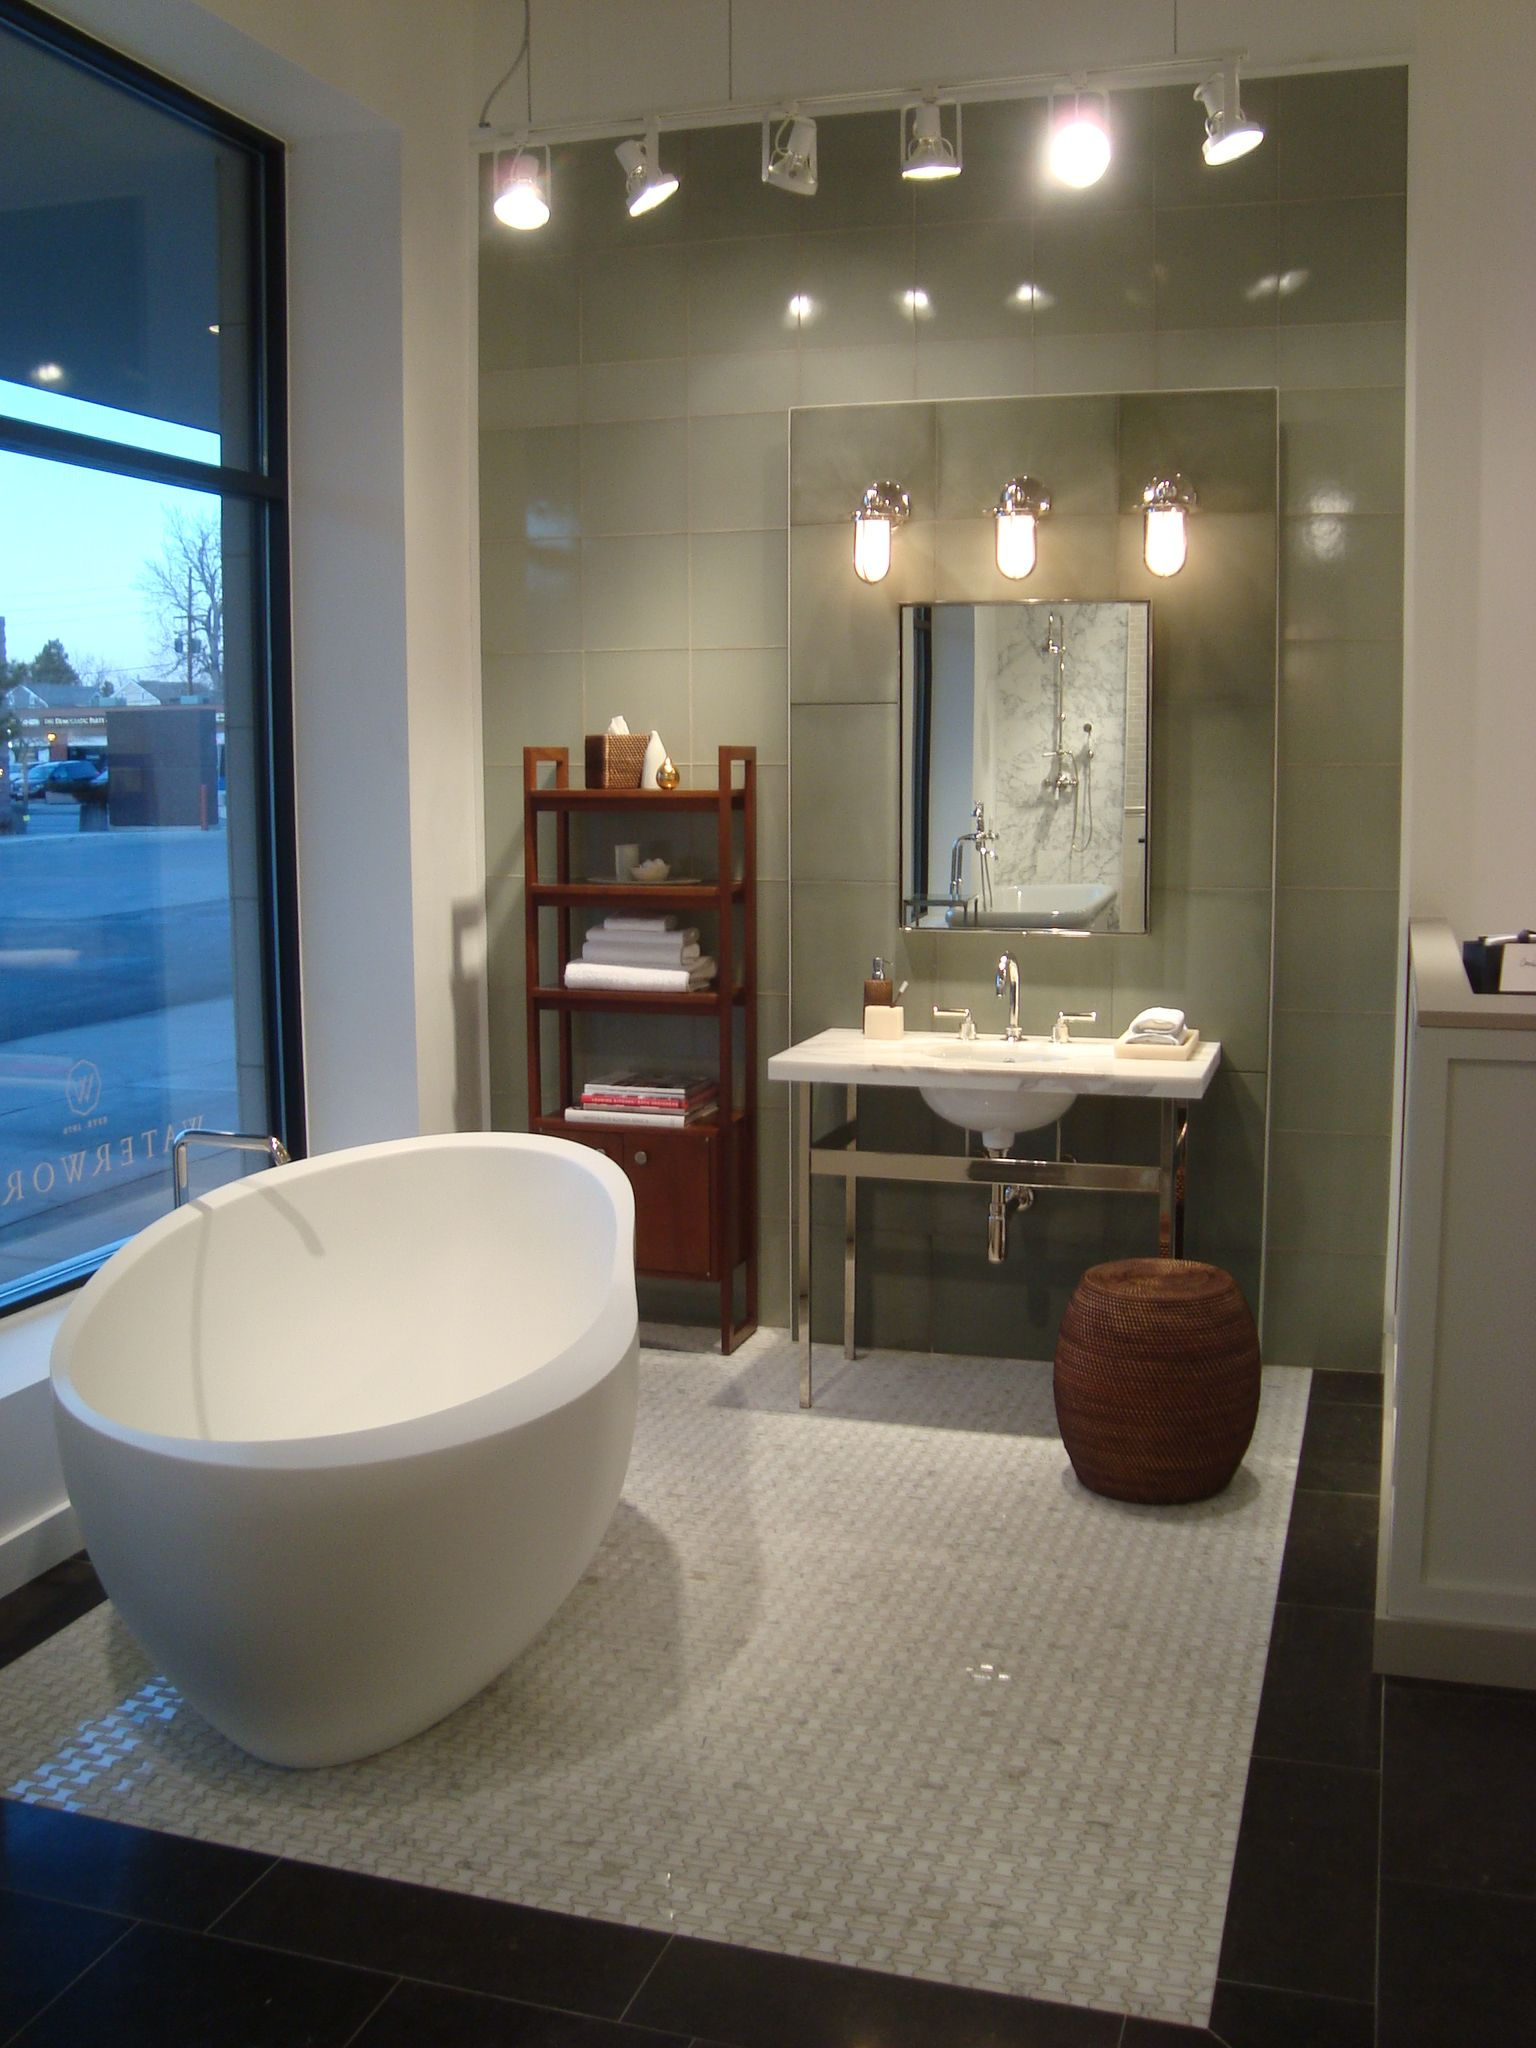 Denver Design District Showroom Bathroom Display Denver Showroom - Bathroom showrooms denver